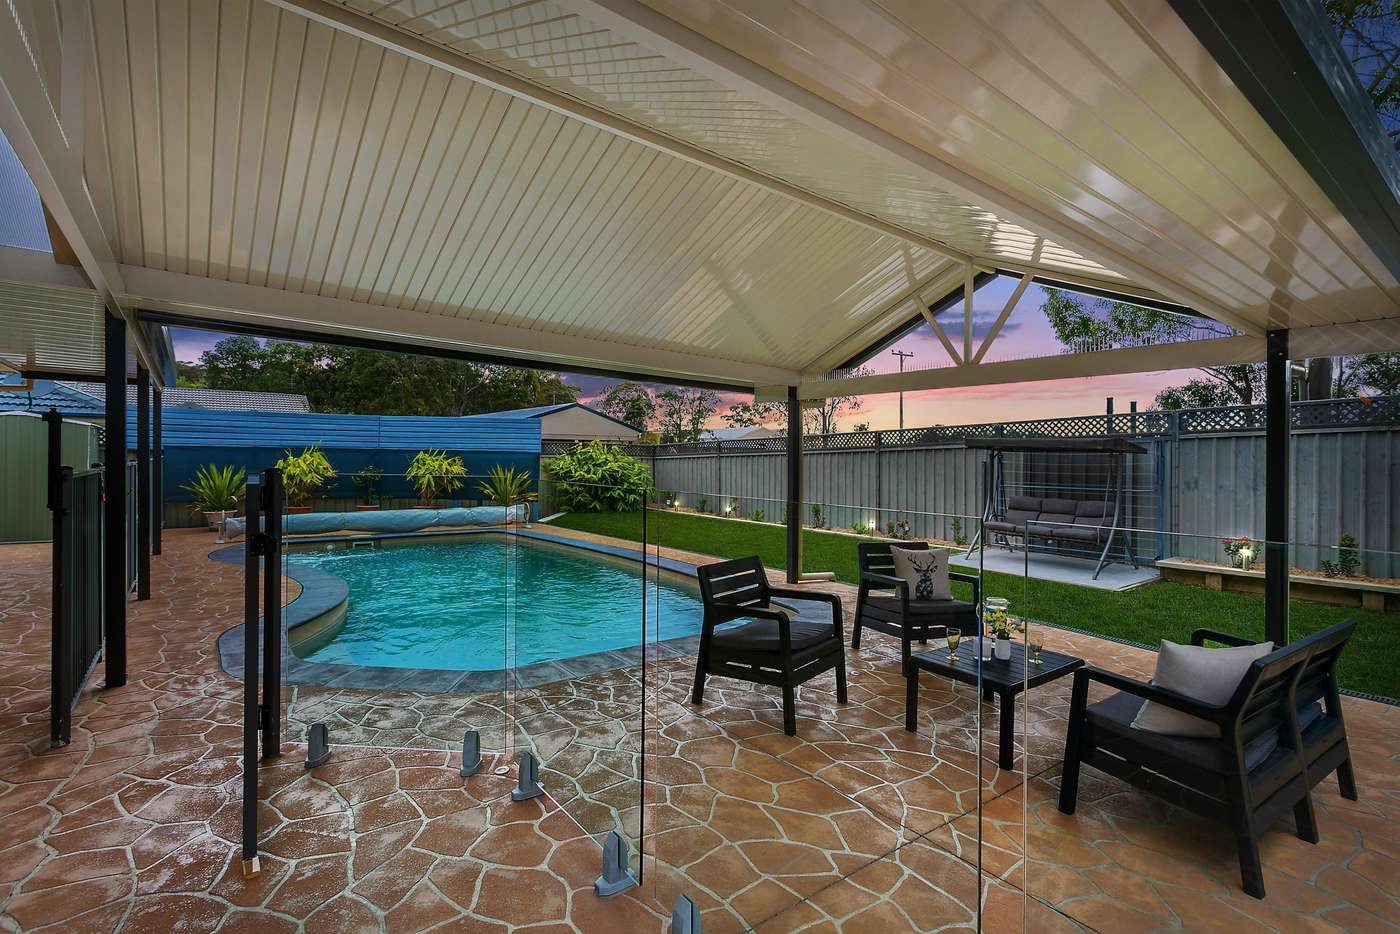 Main view of Homely house listing, 46 Settlement Drive, Wadalba NSW 2259